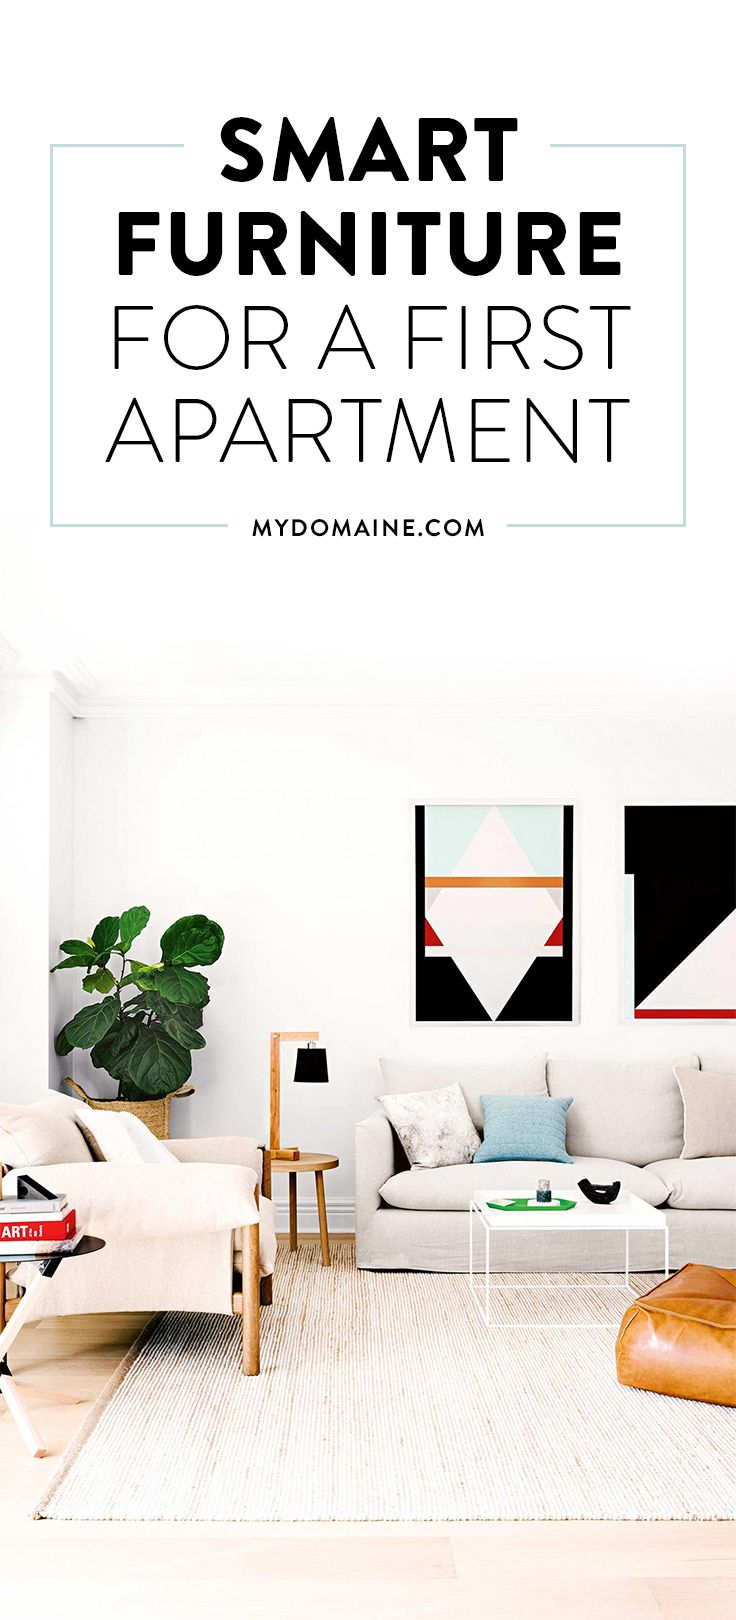 The Most Stylish Budget Furniture For Your First Apartment Home Furnishings Home Decor First Apartment Affordable Furniture